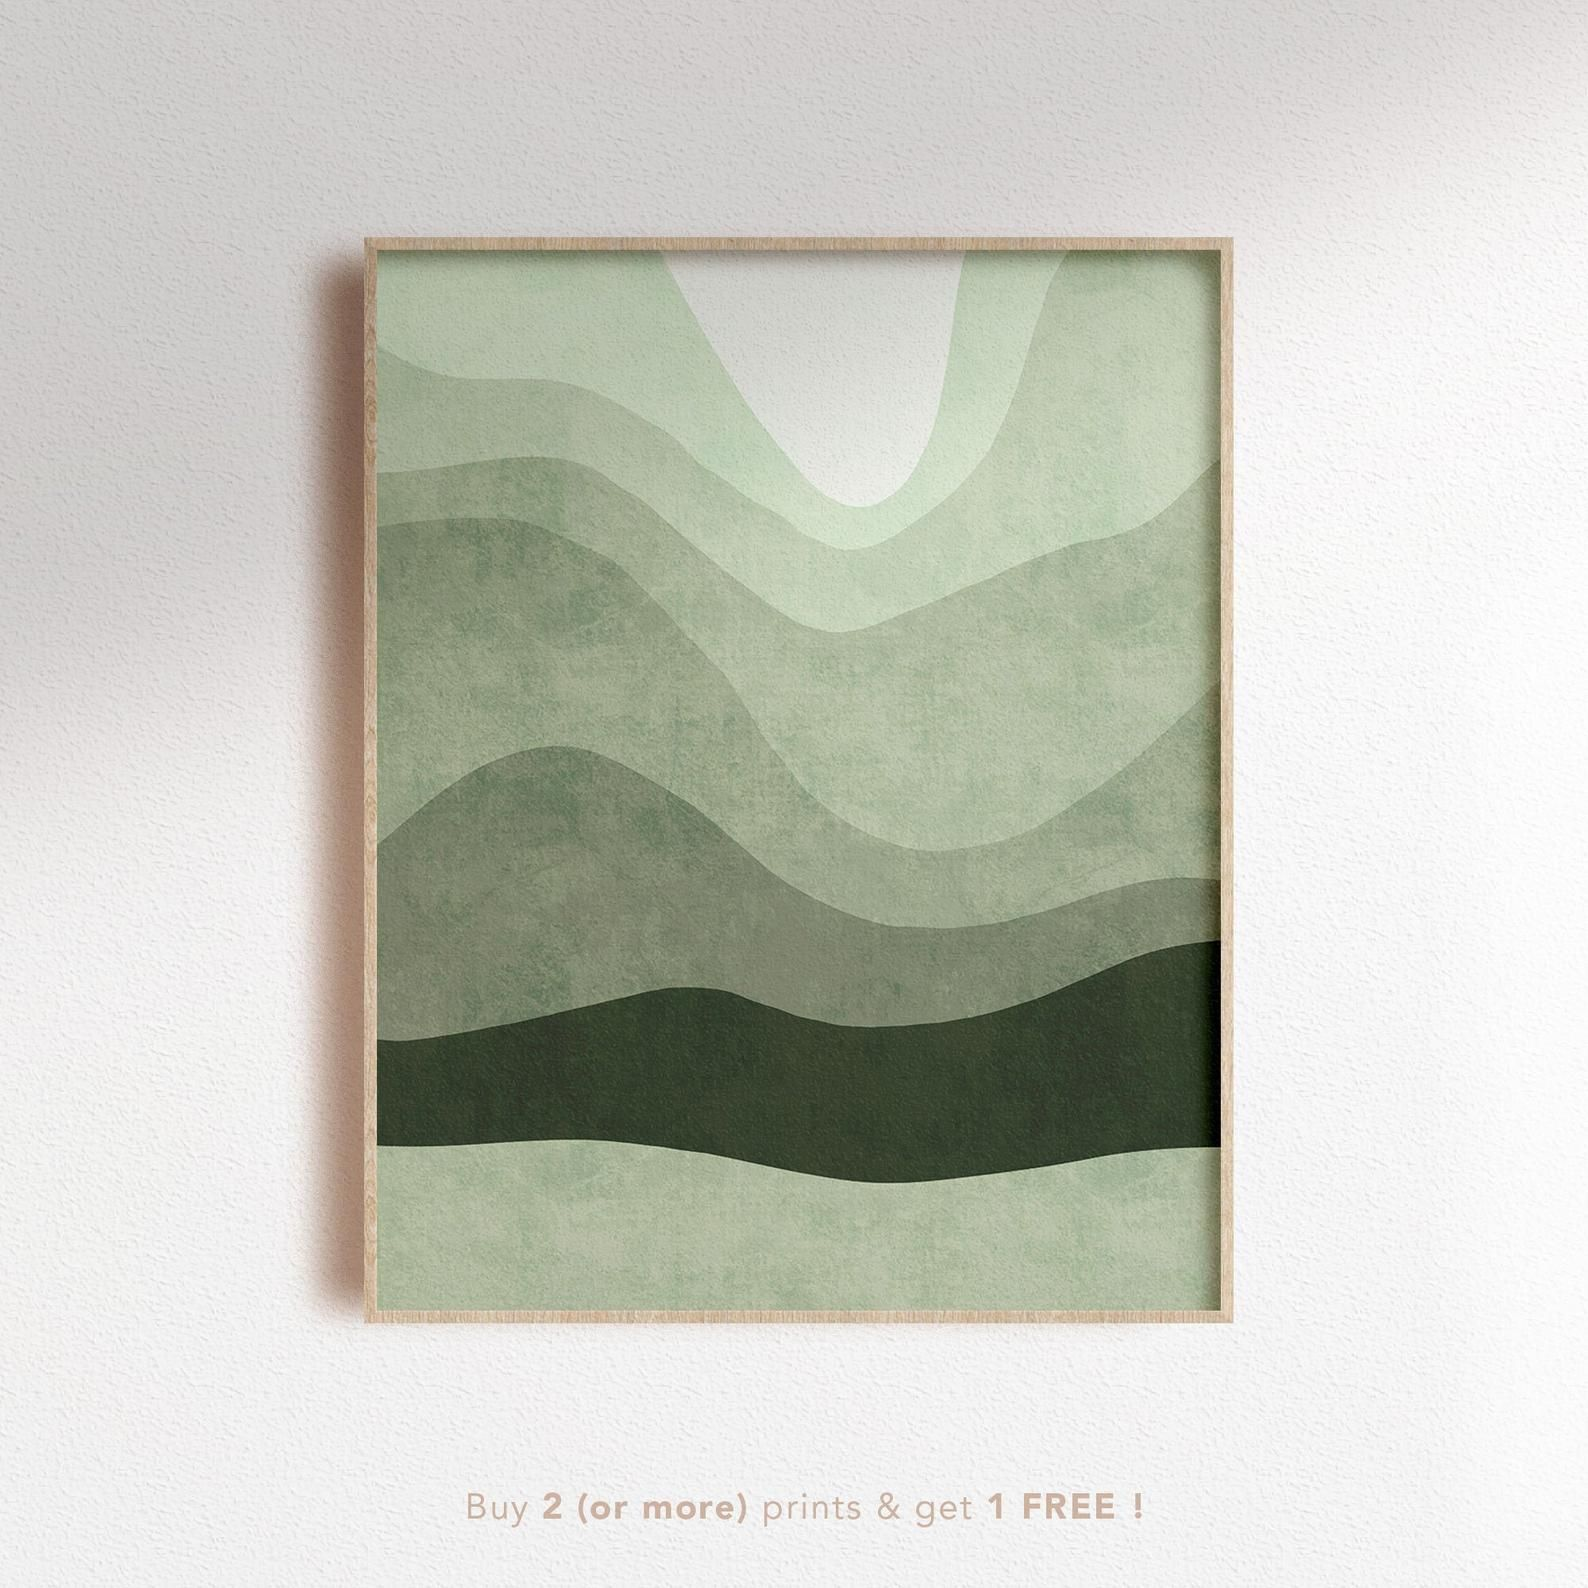 Mint Abstract Landscape Digital Print Green Mountain Scenery Poster Ombre Lines Poster Vintage Wall Art Prints Digital Art Prints Mountain Art Print